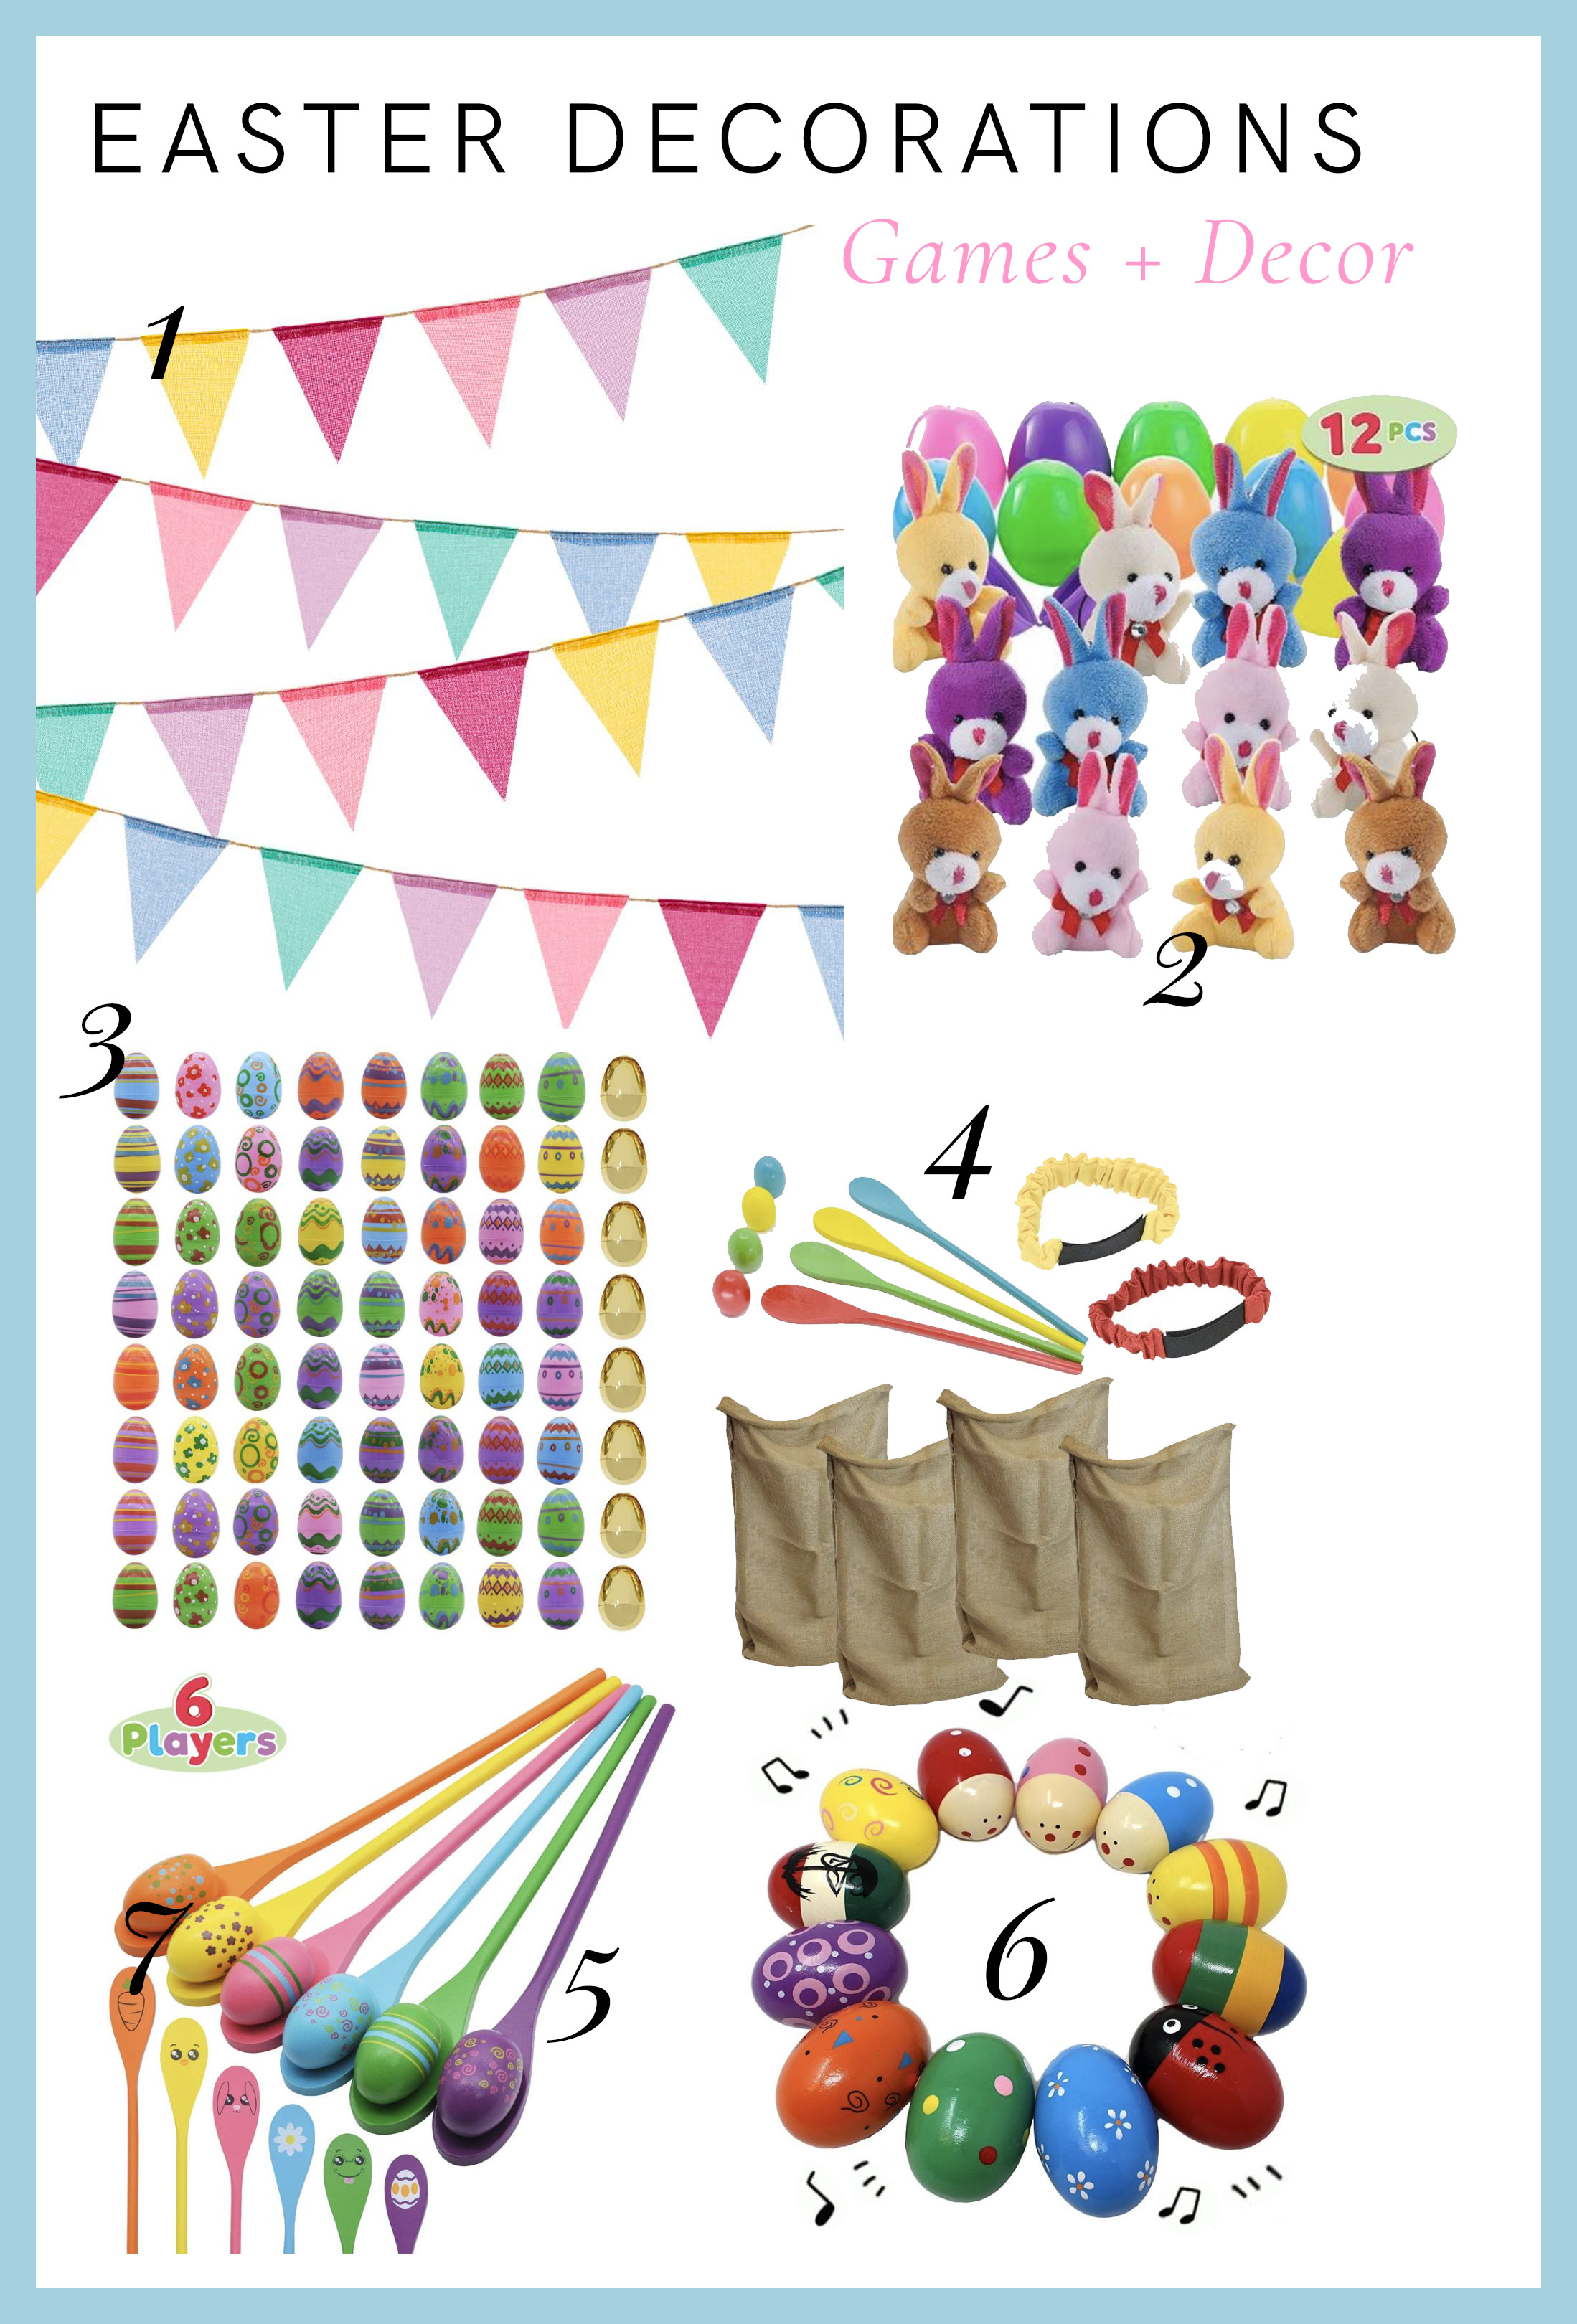 fun easter decor and gifts for kids and easter spring parties - banners and more